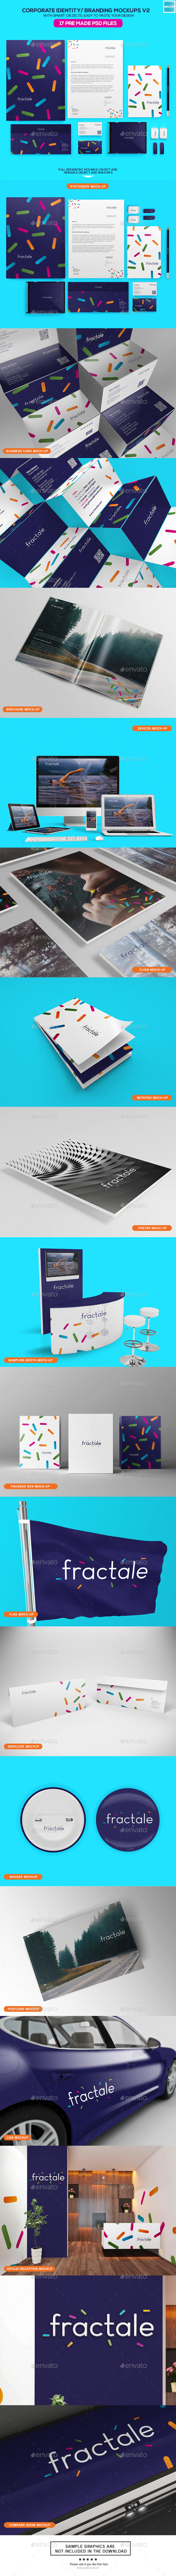 pple ,apple ipad air ,apple ipad air2 ,applle ipad 2 ,psd ,free ,free psd ,apple ipad mini ,mock up ,free